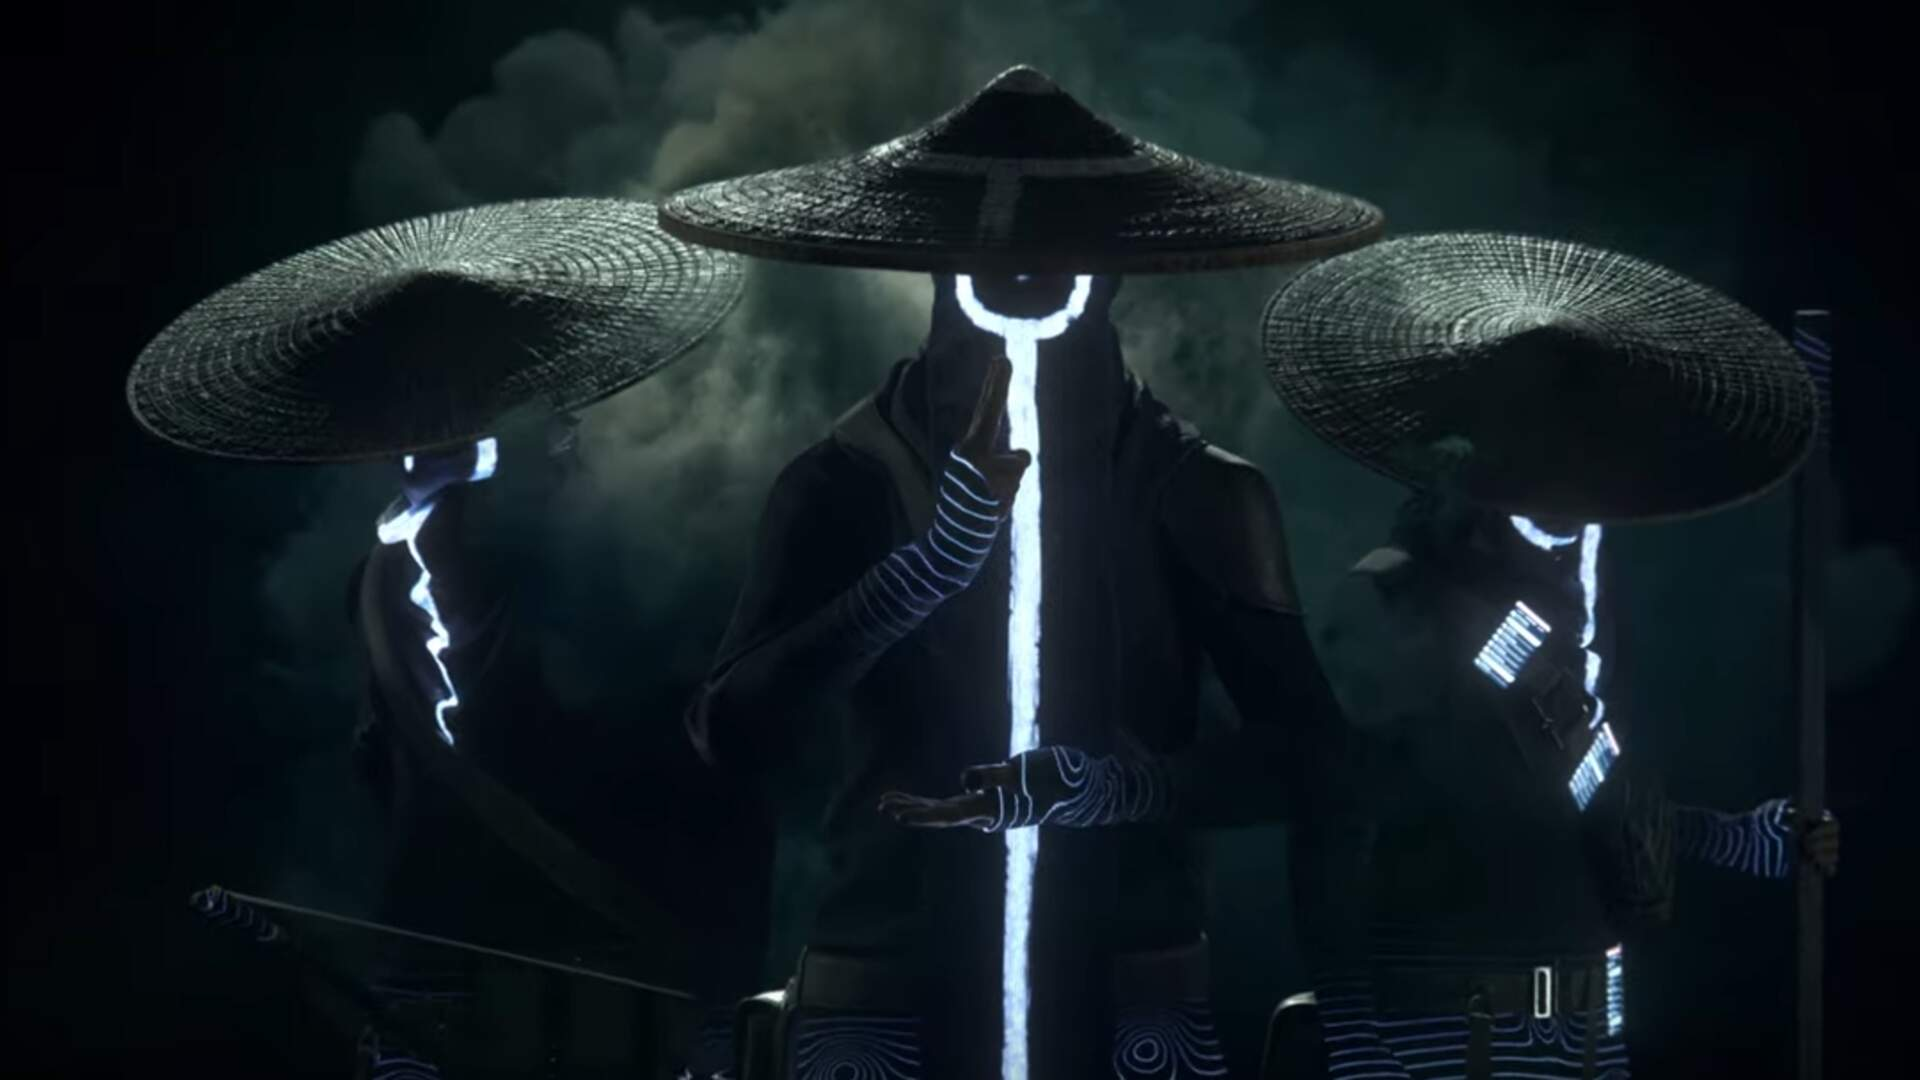 GhostWire: Tokyo is a Supernatural Occult Game from Shinji Mikami